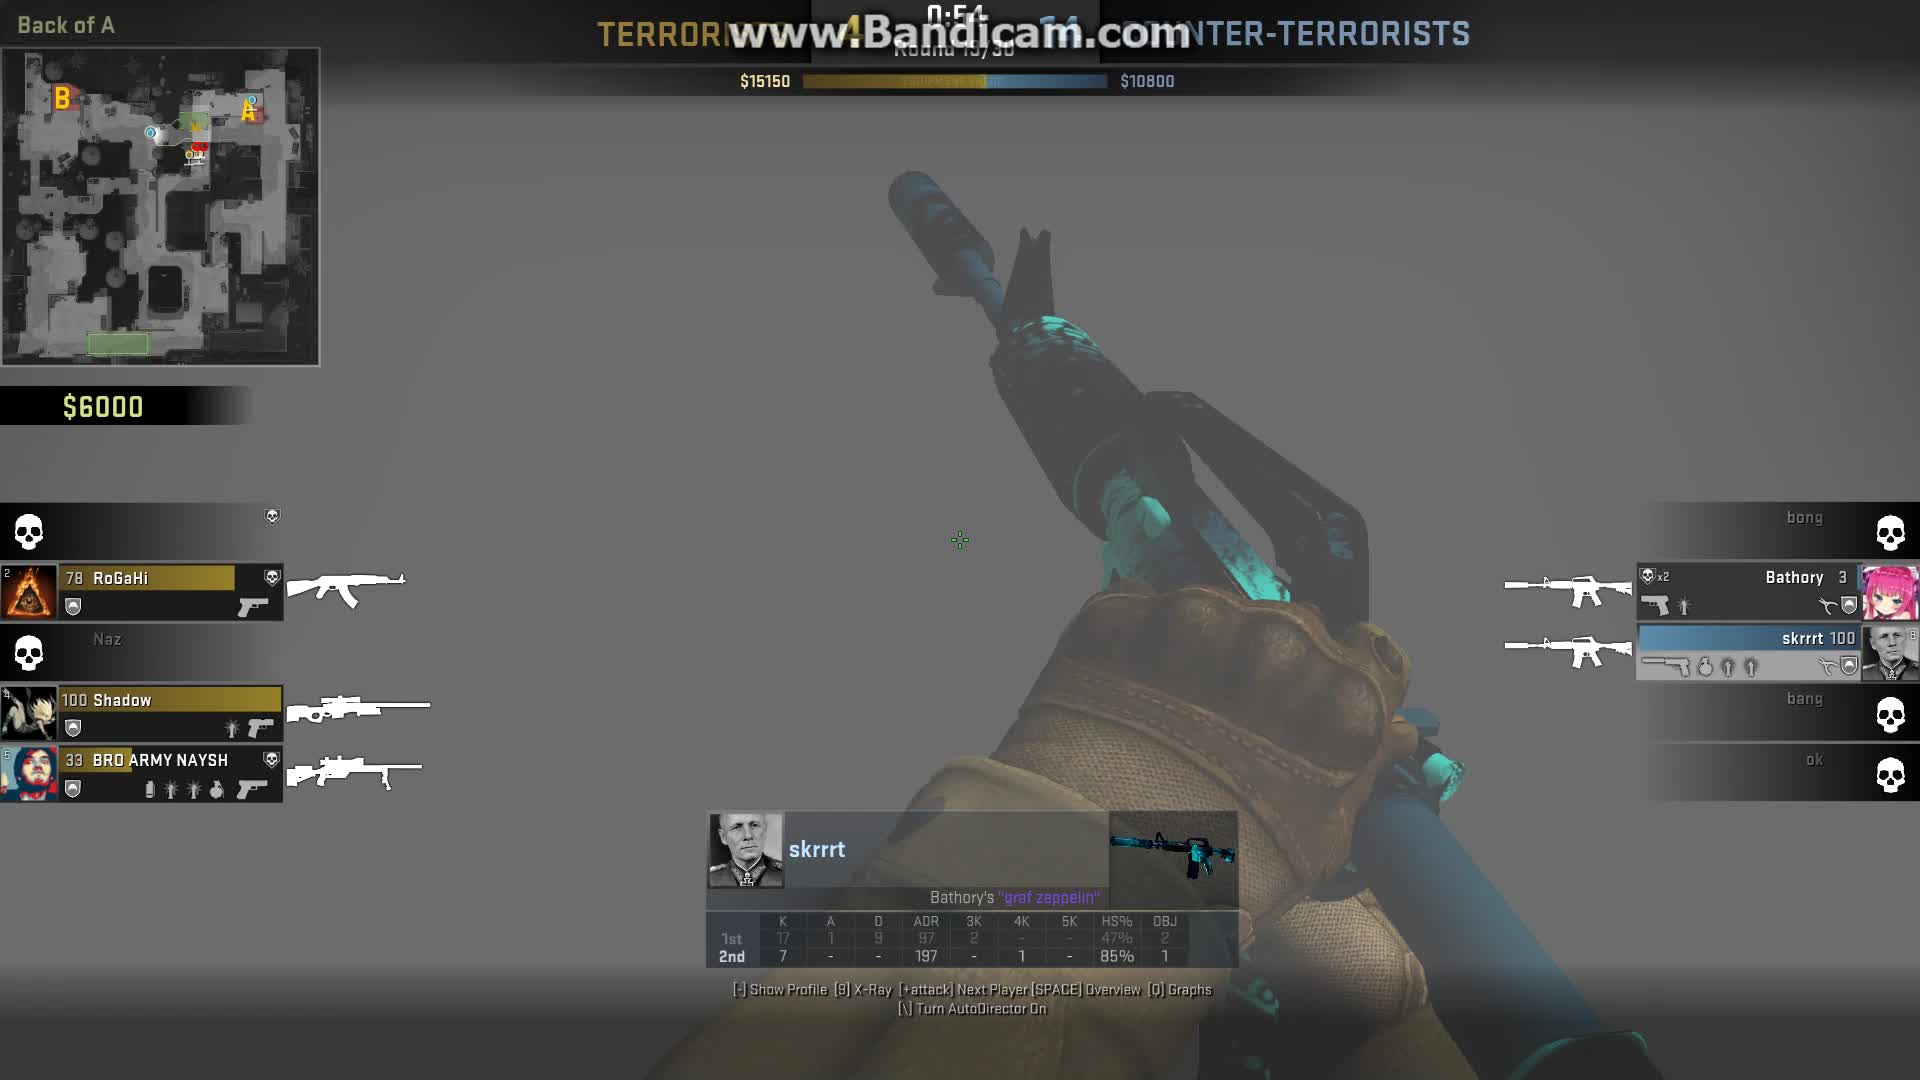 counterstrike, Sweet Mother of Flicks GIFs